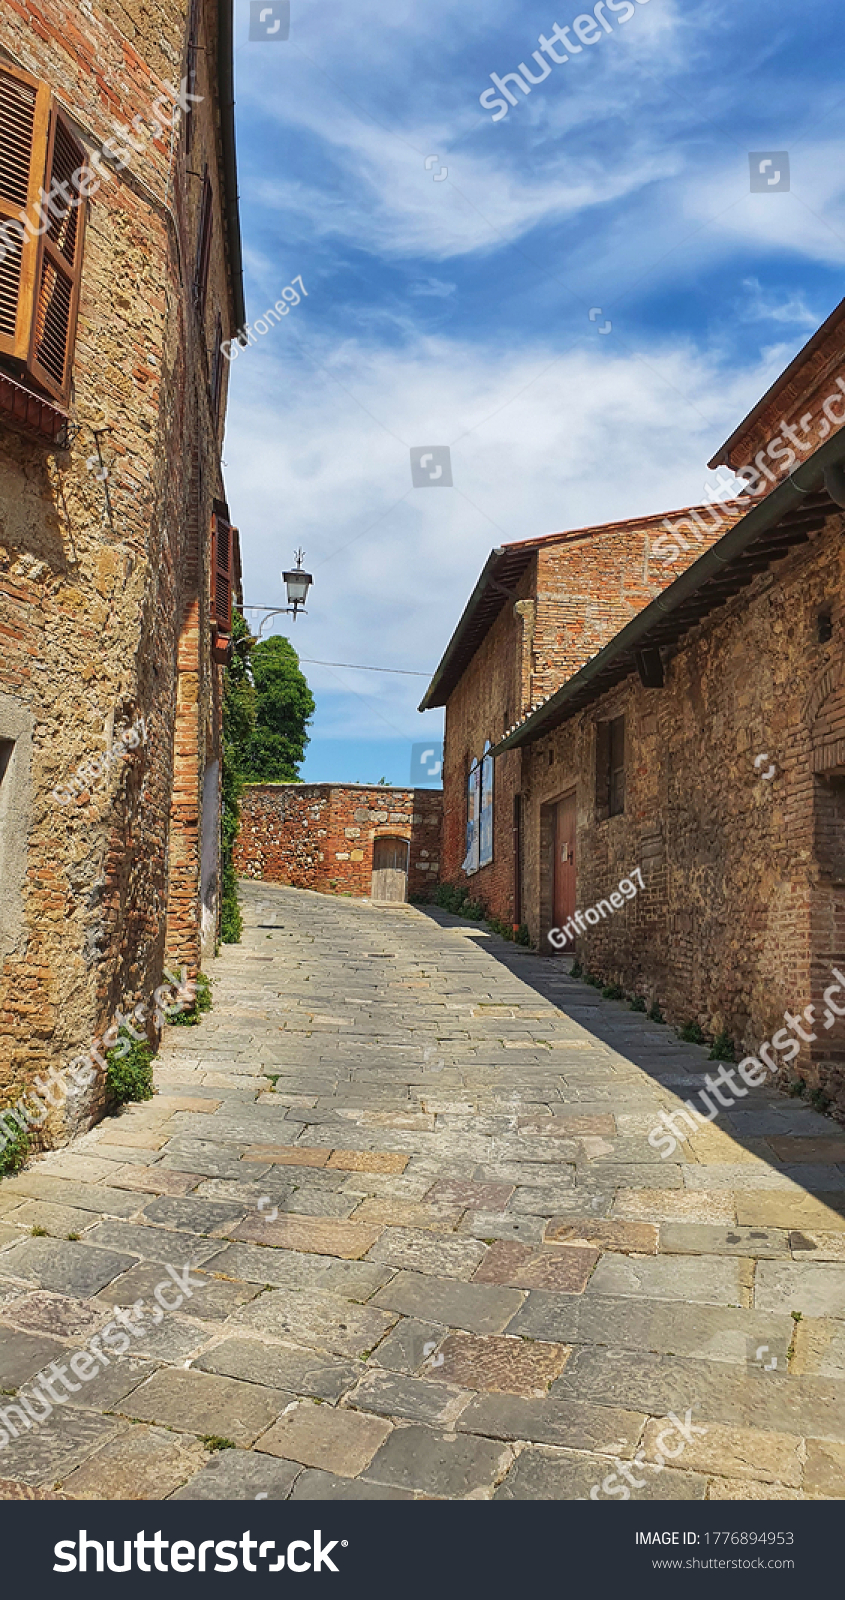 Beautiful view of an alley of Montepulciano, a tuscan town between val d' Orcia e val di Chiana in Italy.